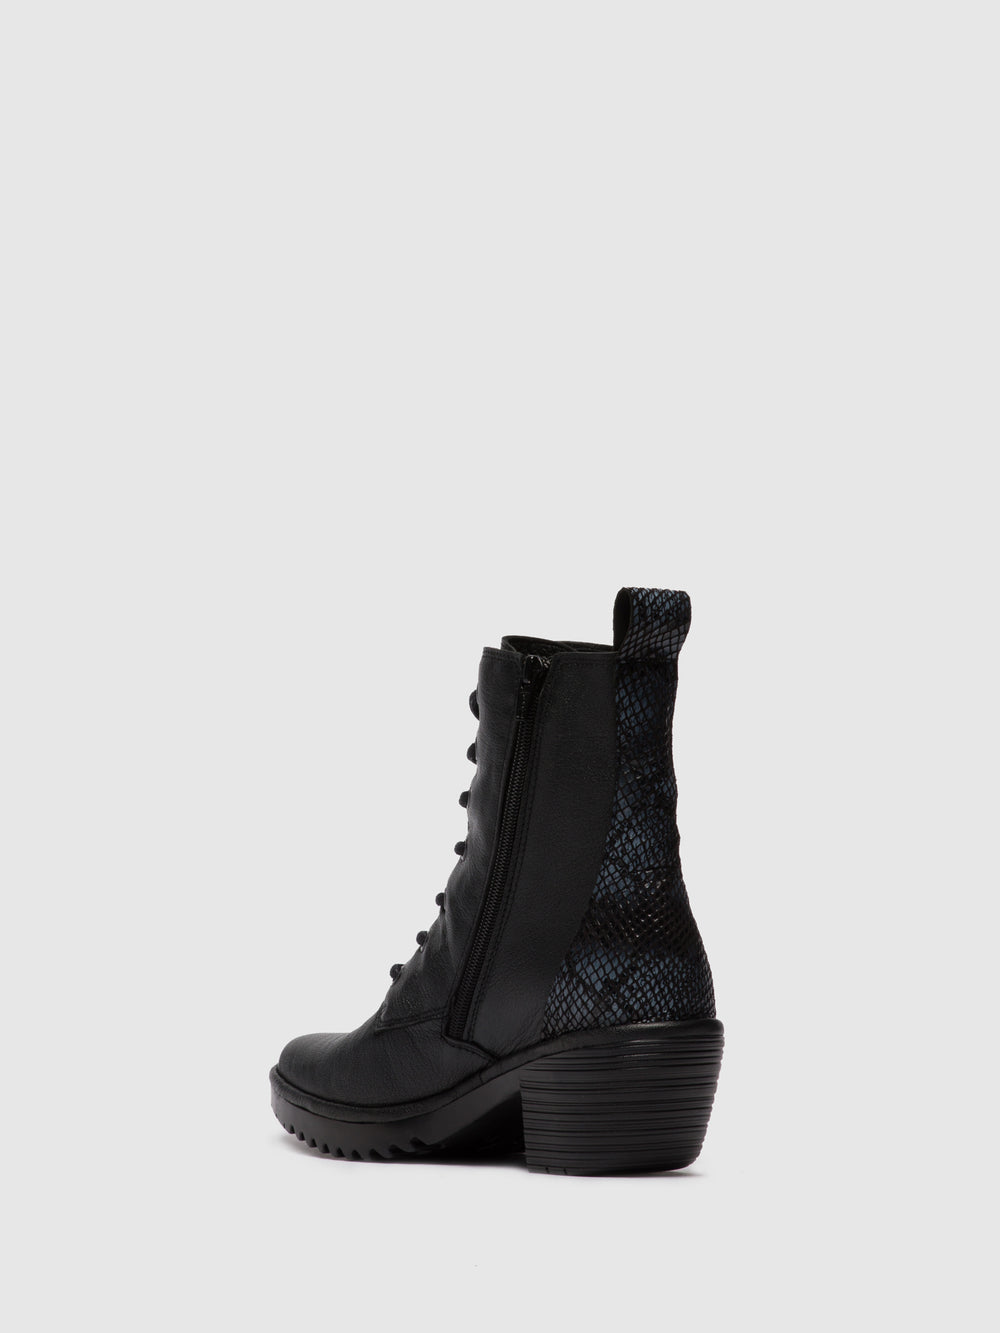 Lace-up Ankle Boots WEBE244FLY MOUSSE/SNAKE BLACK/BLACK (GREY)